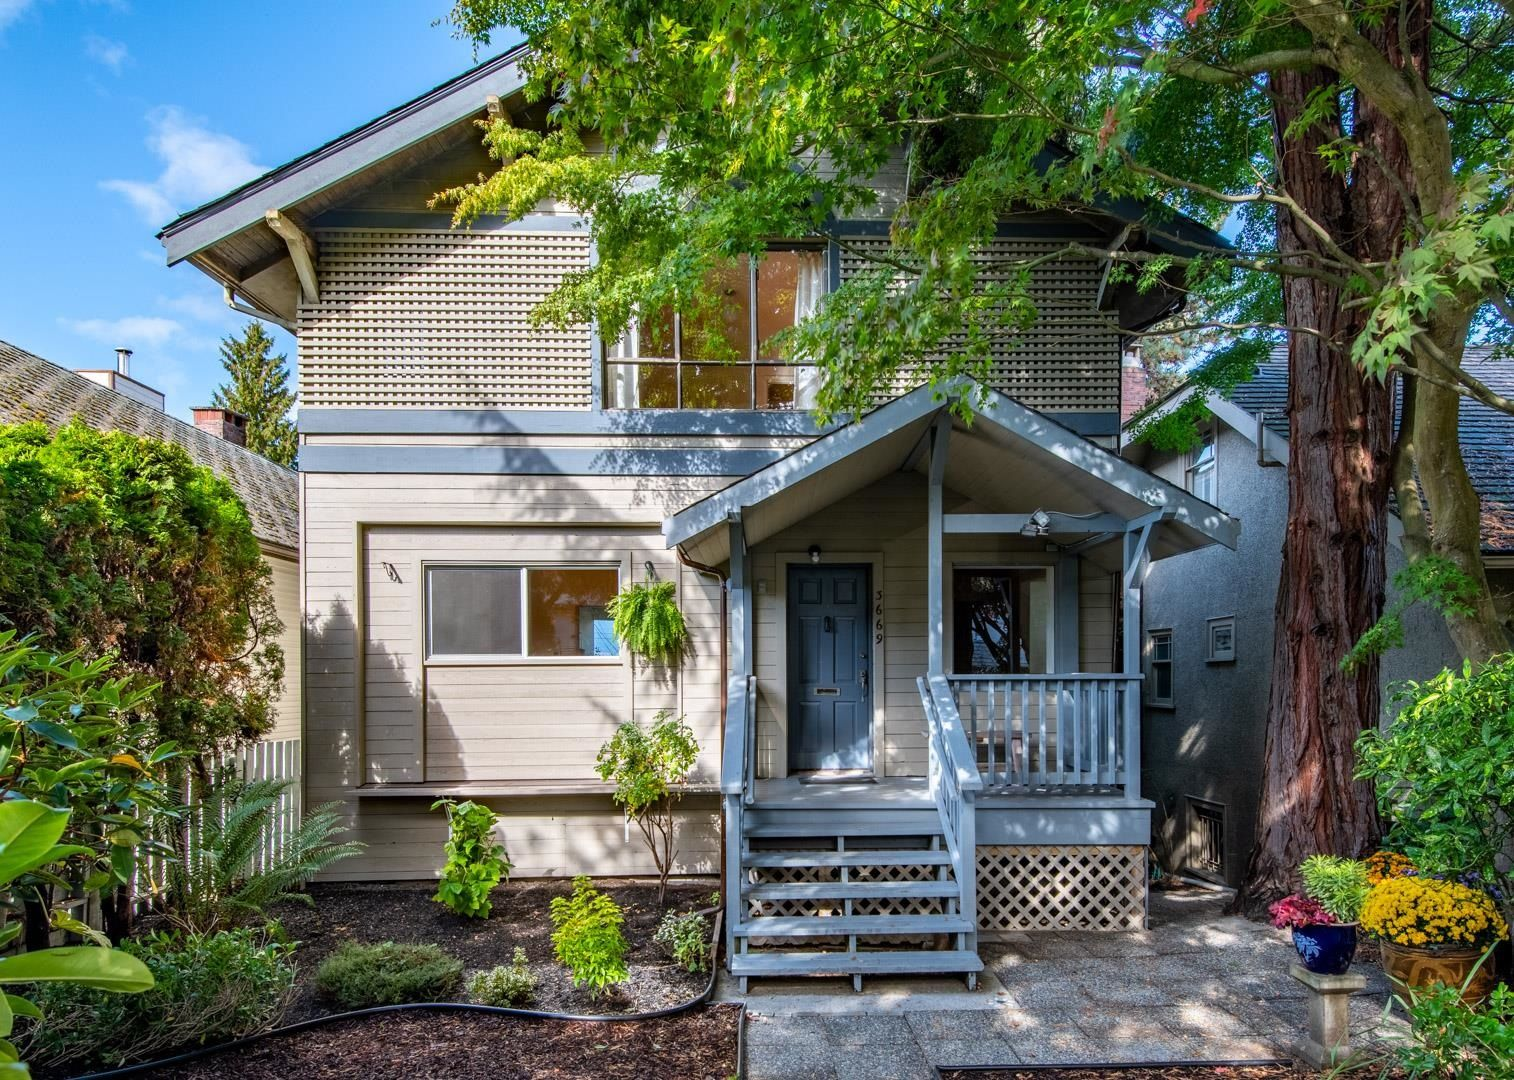 """Main Photo: 3669 W 14TH Avenue in Vancouver: Point Grey House for sale in """"Point Grey"""" (Vancouver West)  : MLS®# R2621436"""